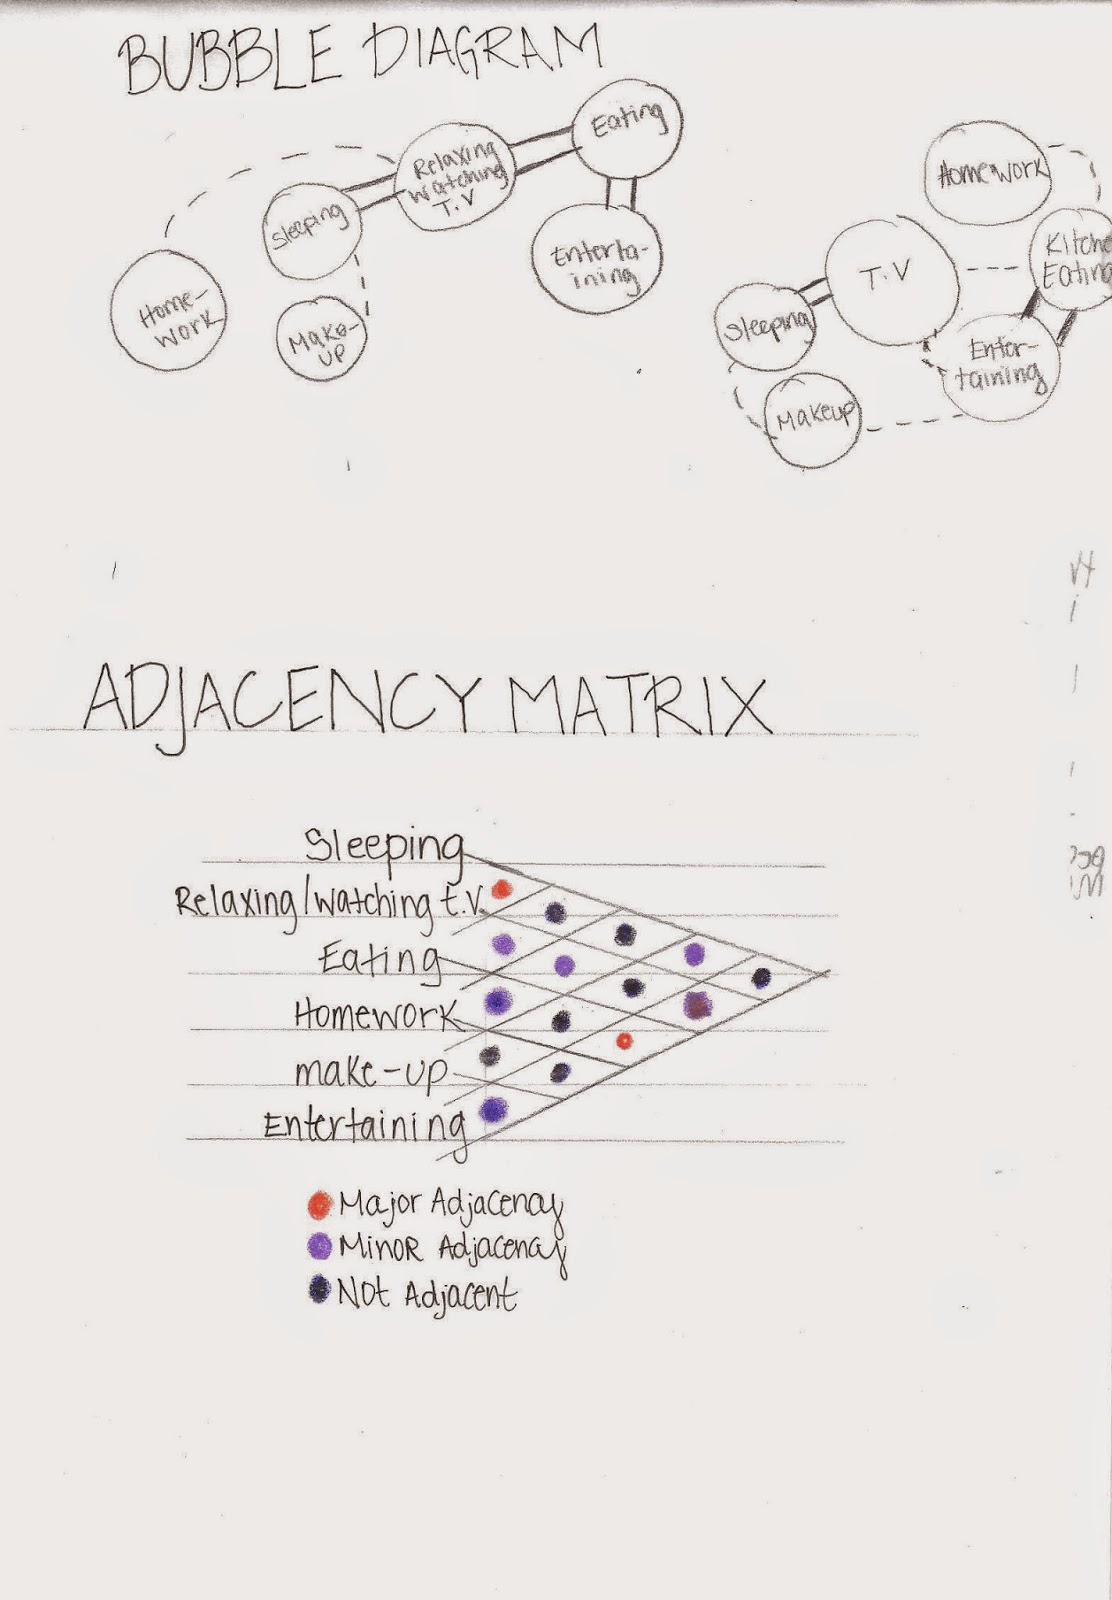 Adjacency Matrixbubble And Block Diagrams A New Designers Blog Logic Diagram Symbols Bubble Help To Organize The Spaces In Logical Way